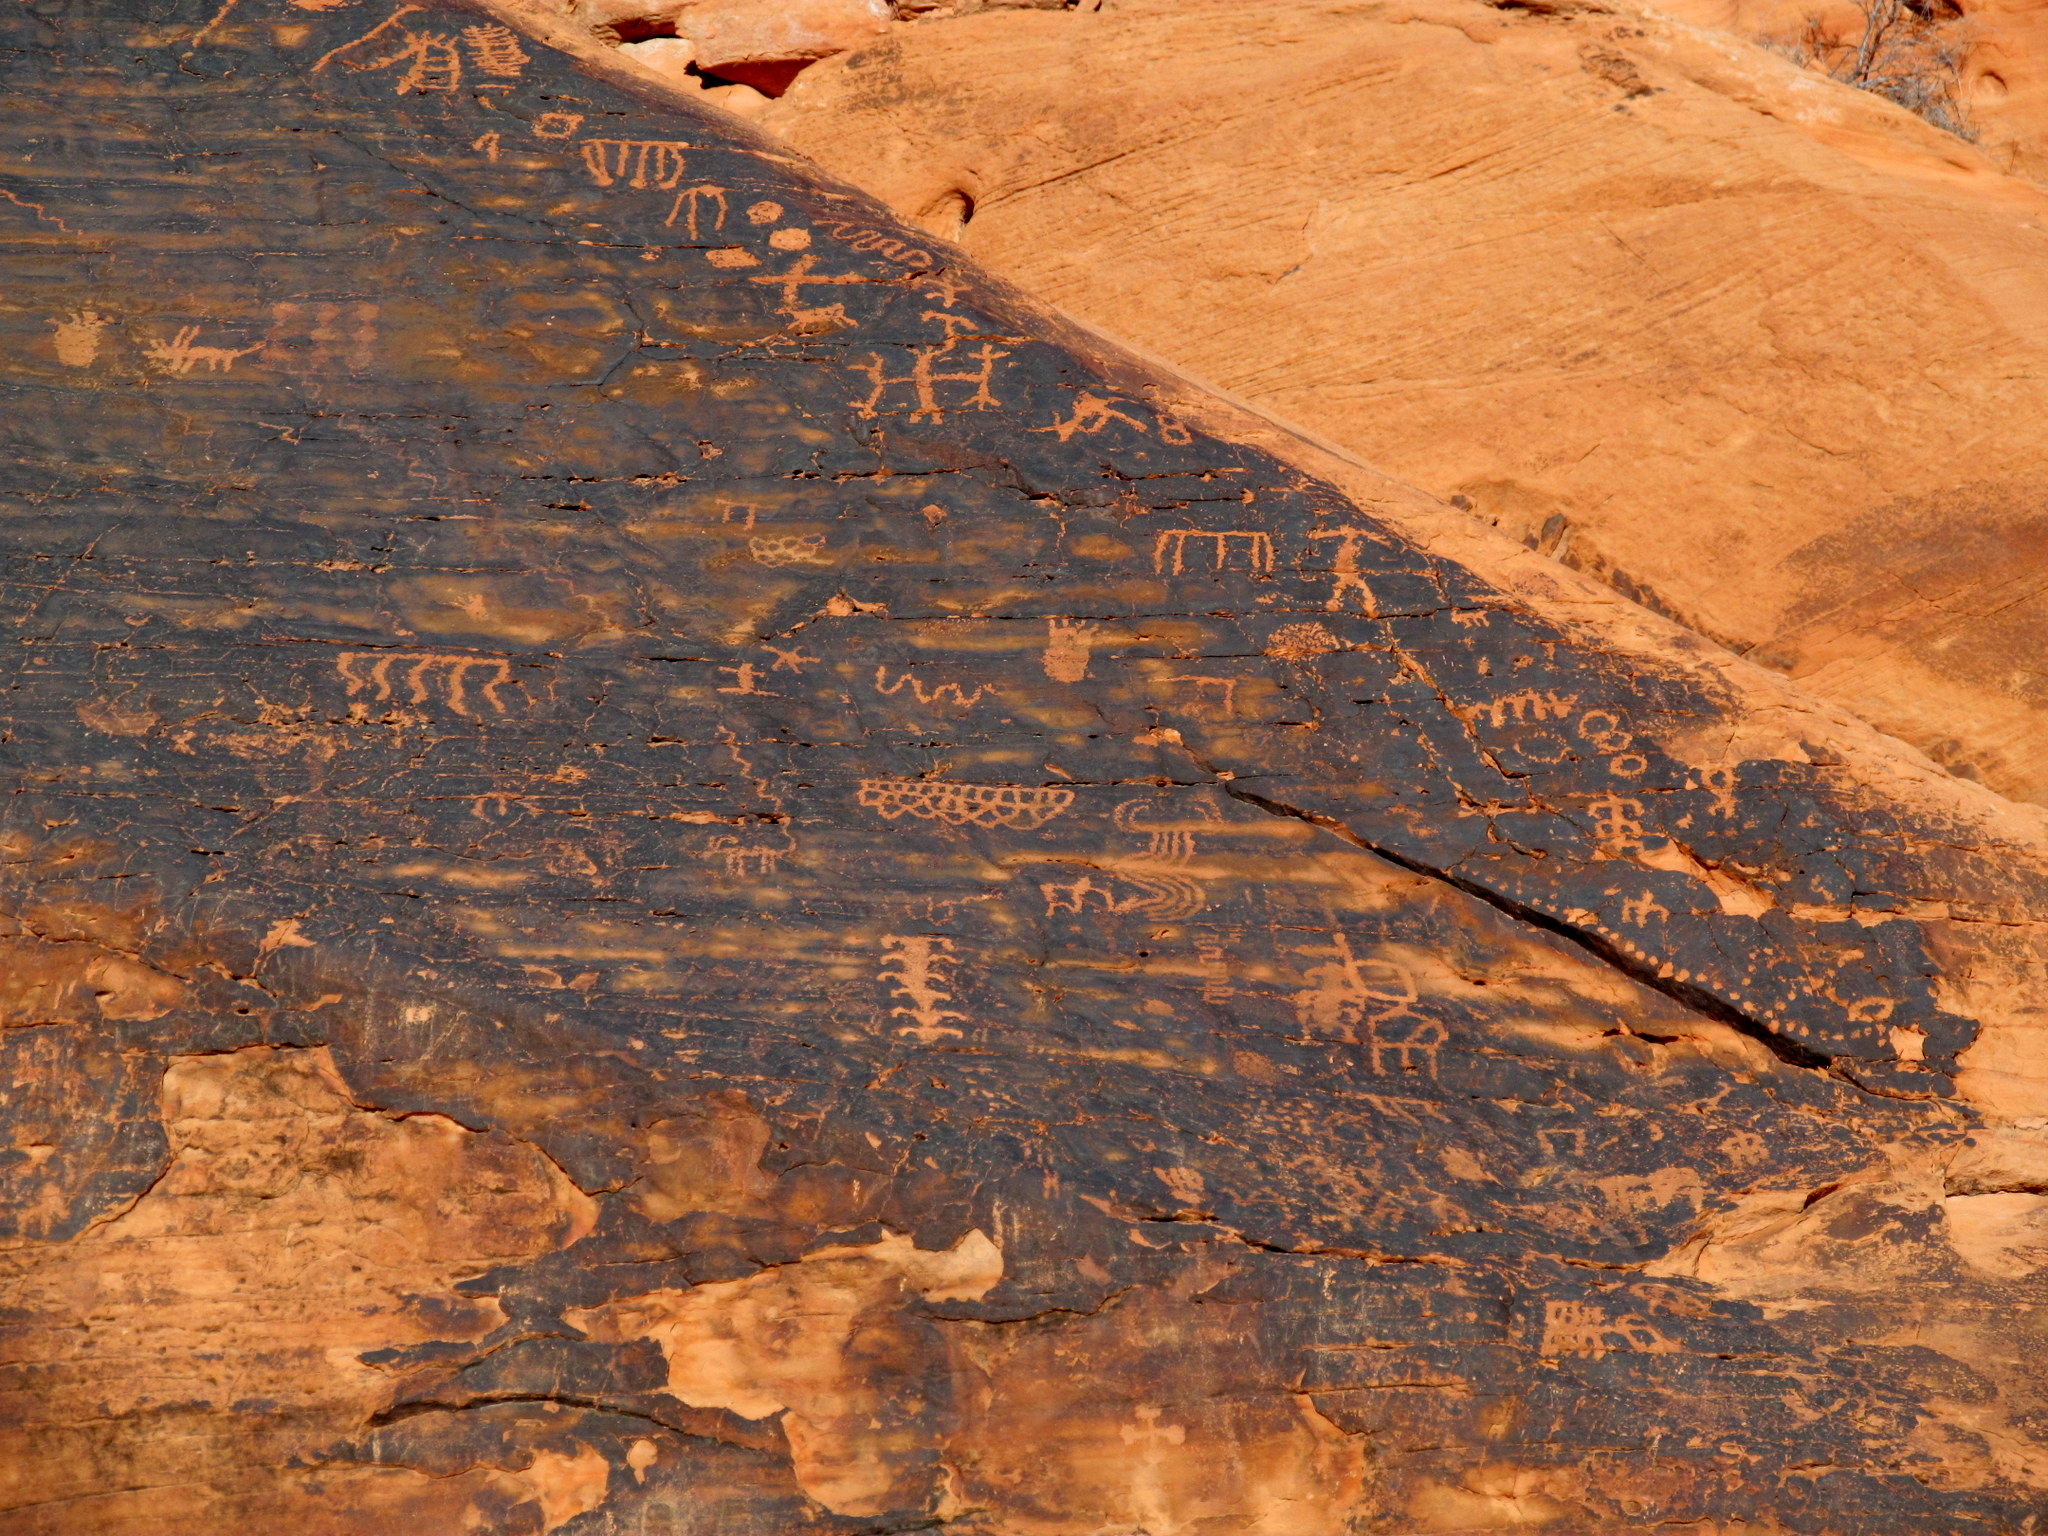 Photo: Mouse's Tank petroglyphs